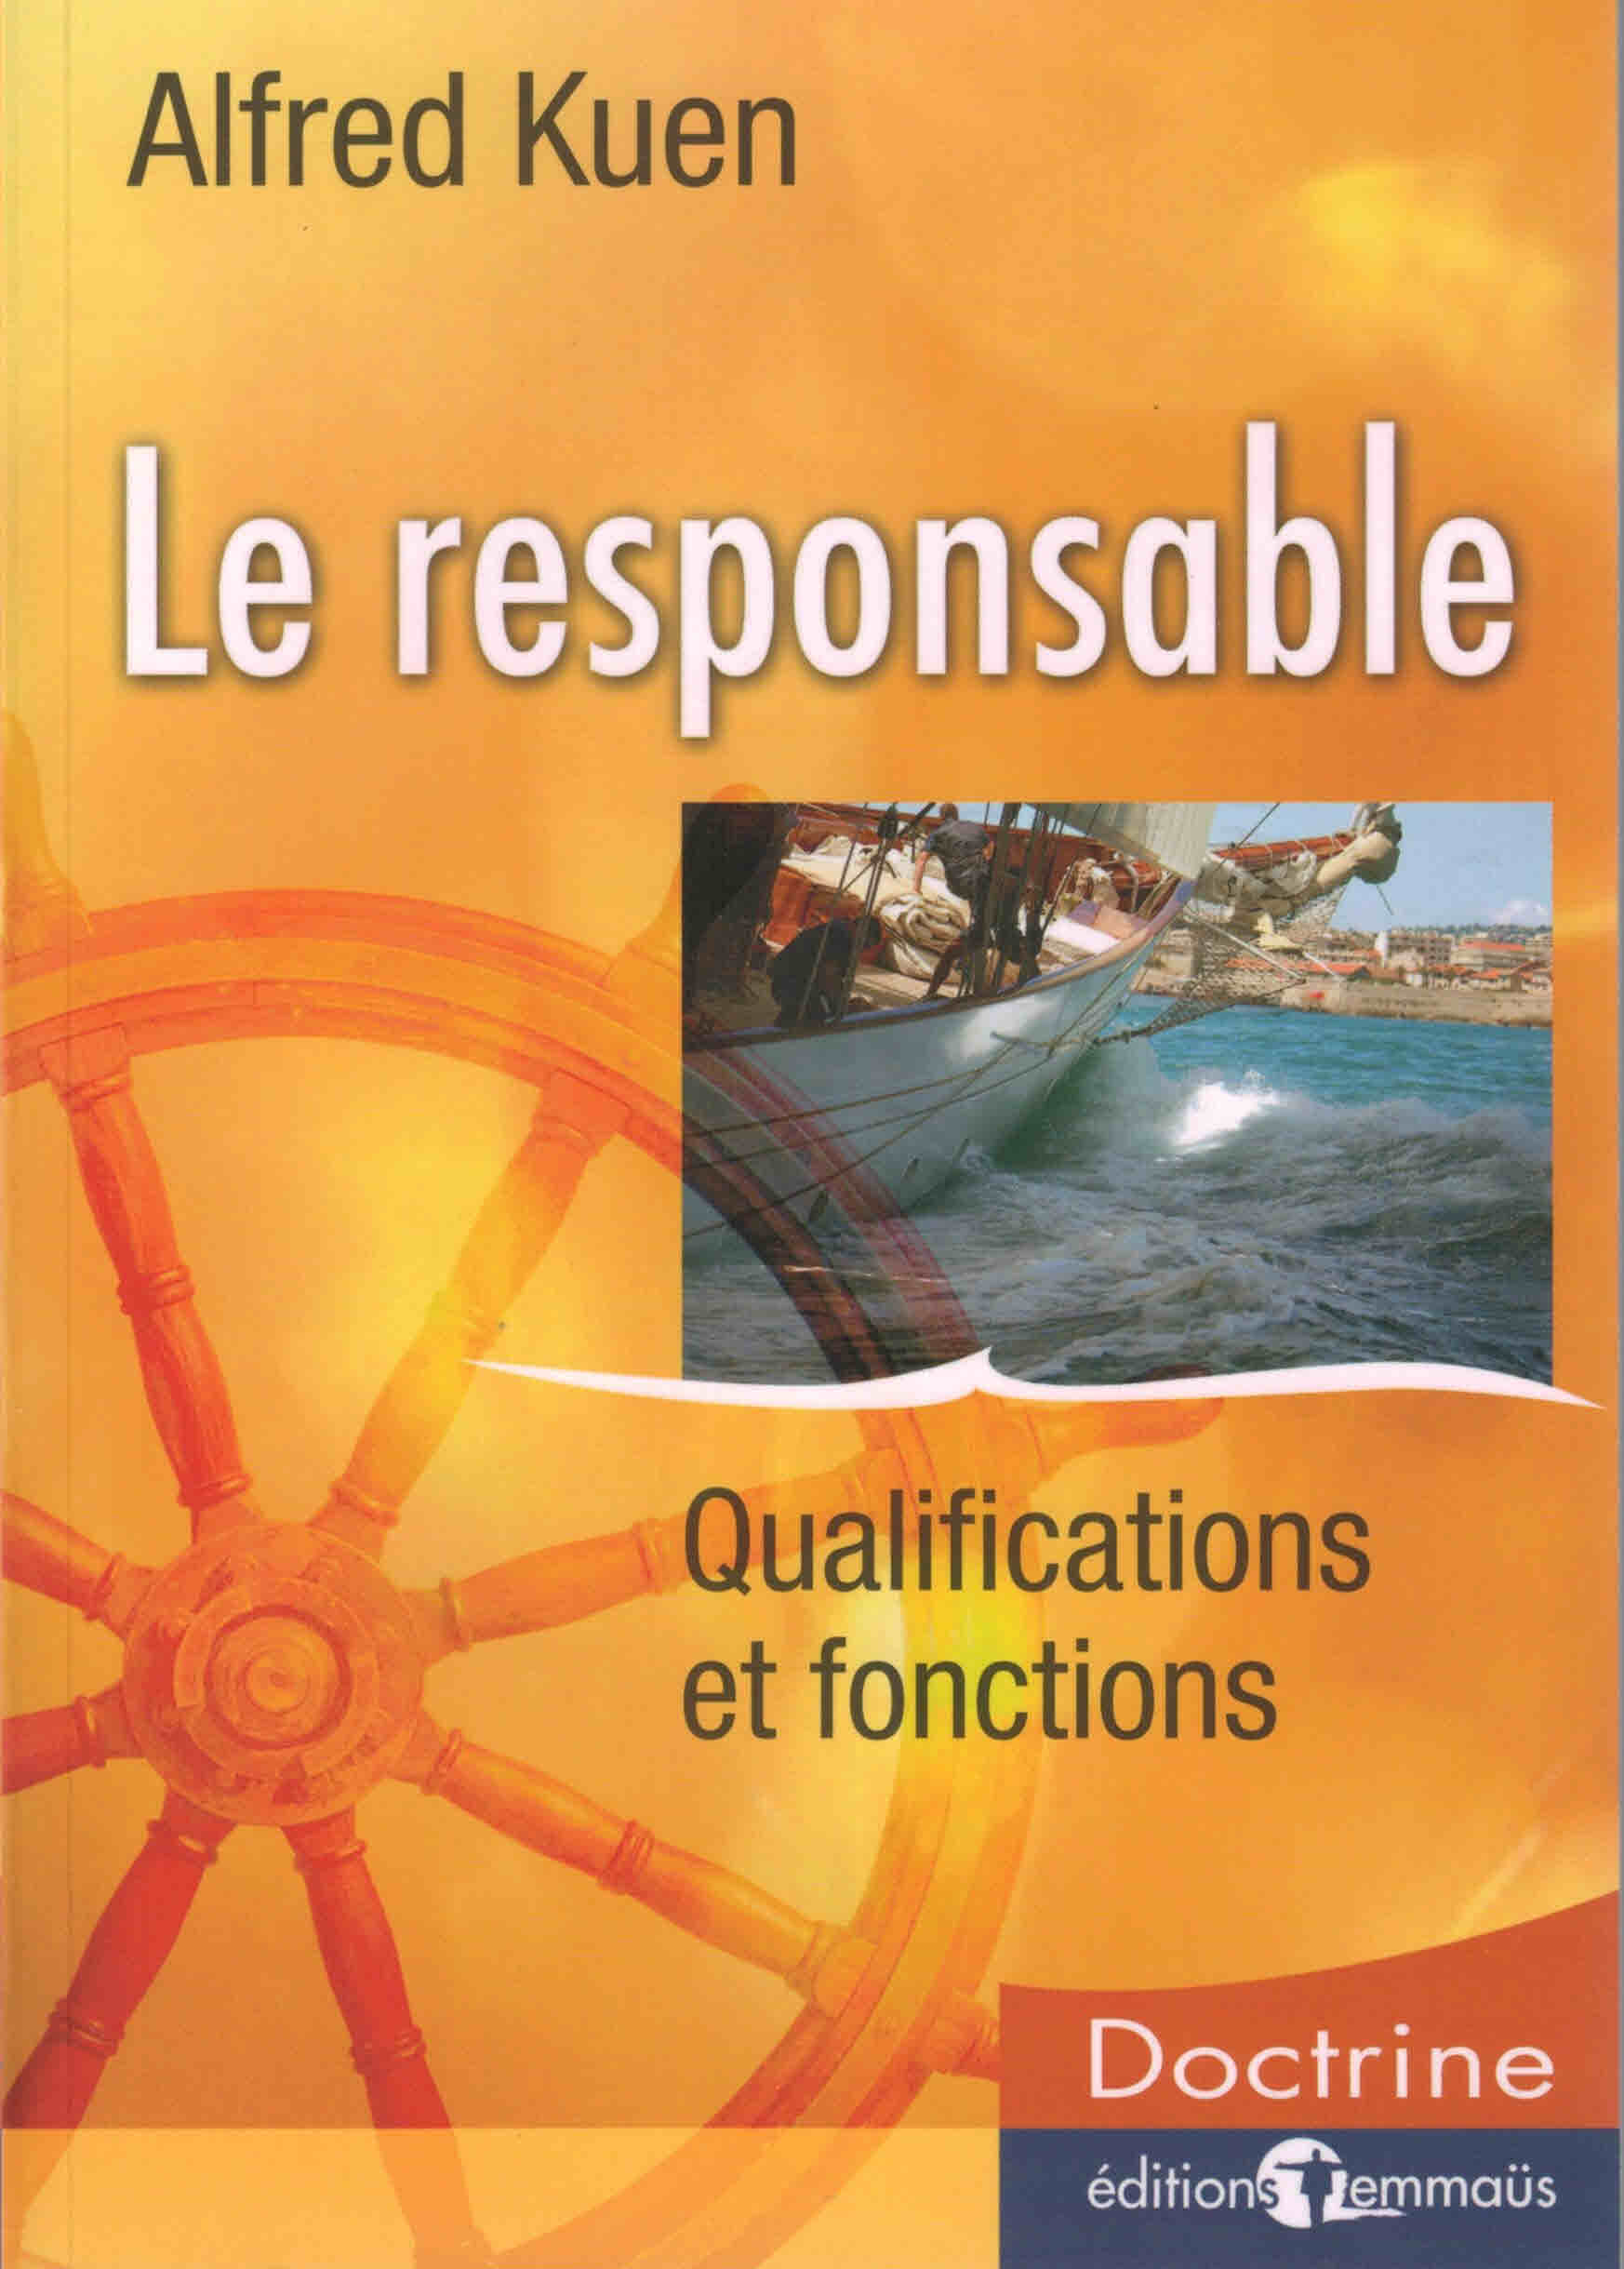 Le responsable Qualifications et fonctions